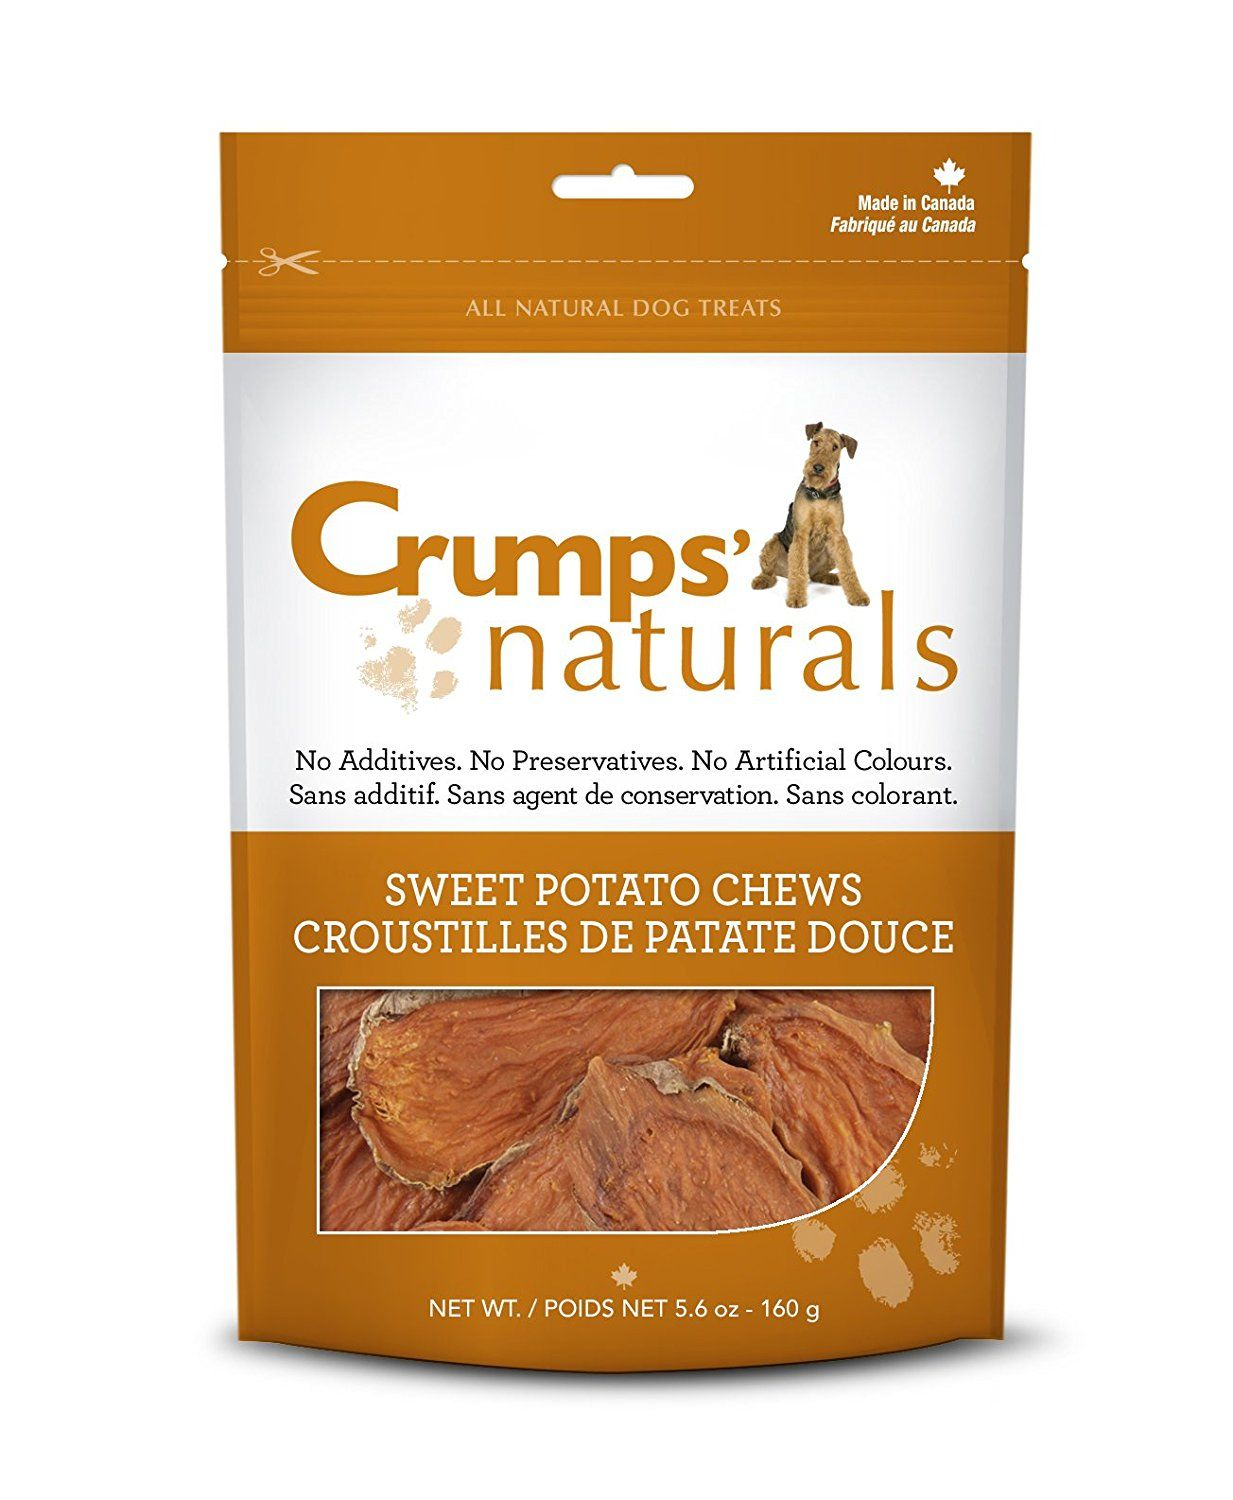 Crumps naturals sweet potato for pets check out this